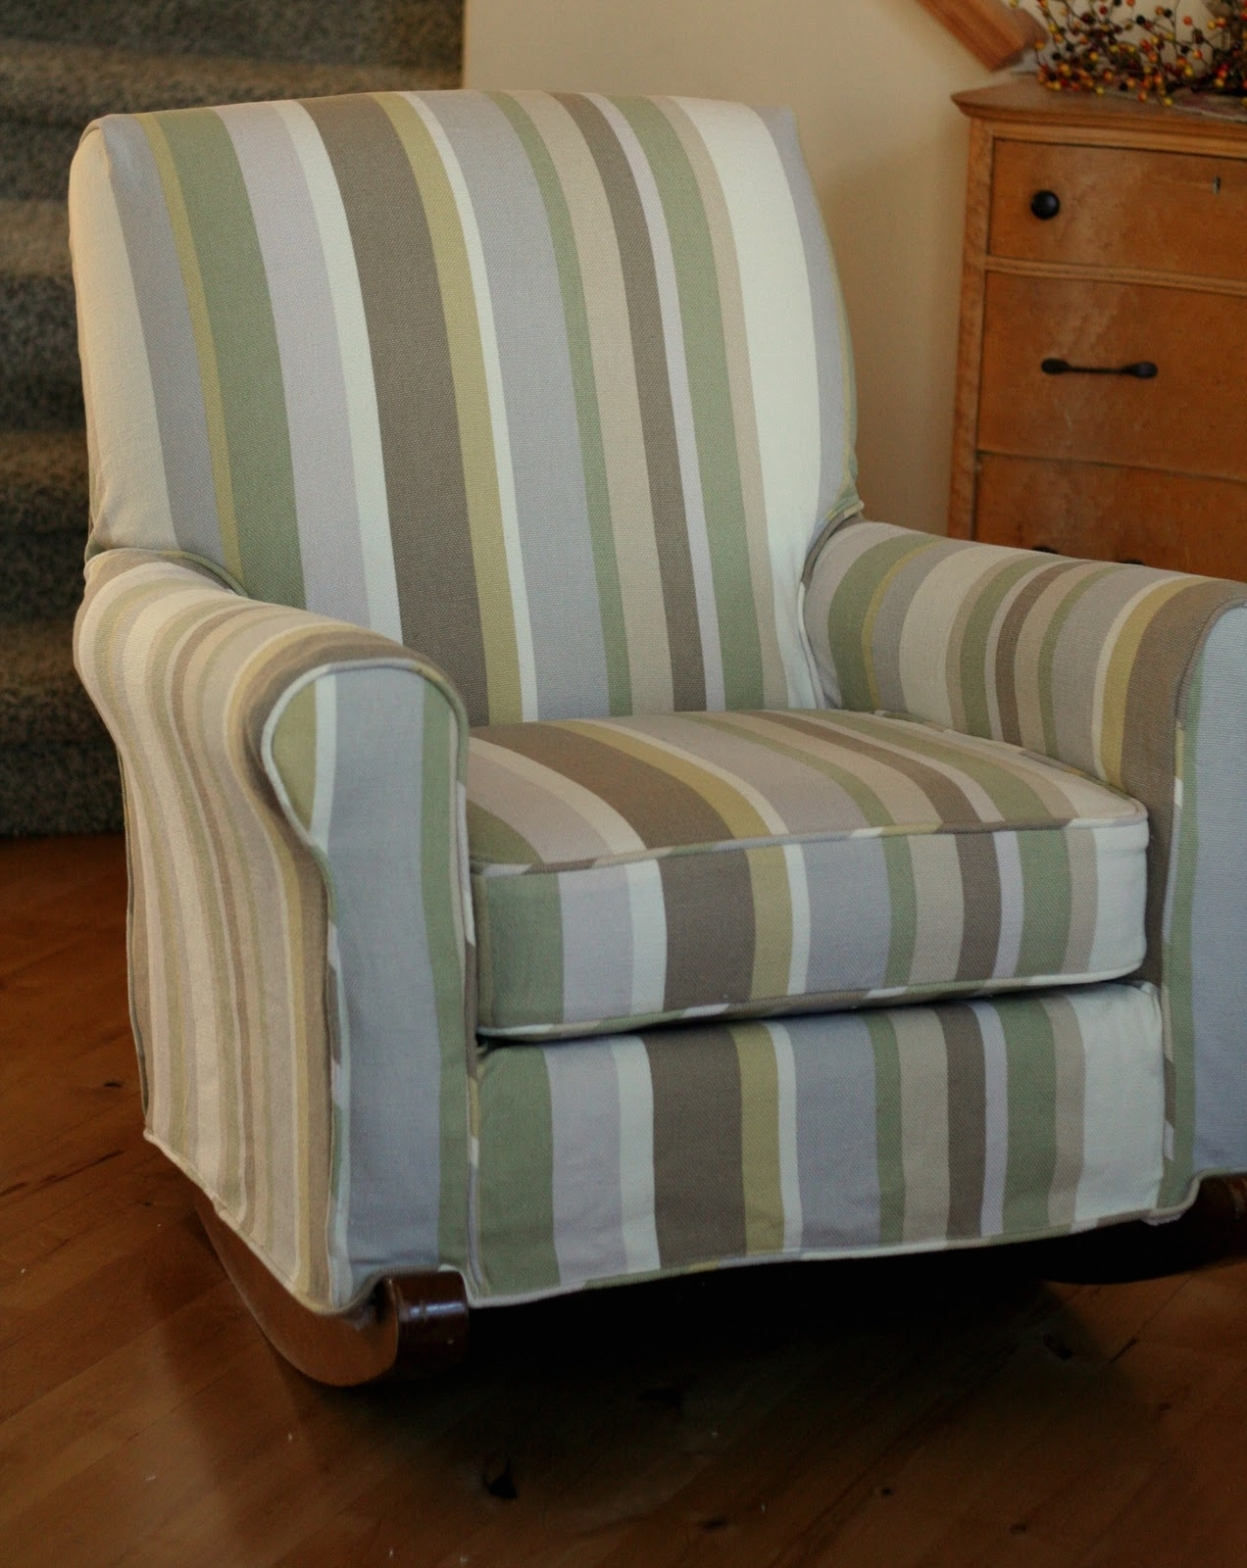 Table & Chair: Upholstered Rocking Chair Covers • Chair Covers Regarding Well Liked Upholstered Rocking Chairs (View 8 of 15)